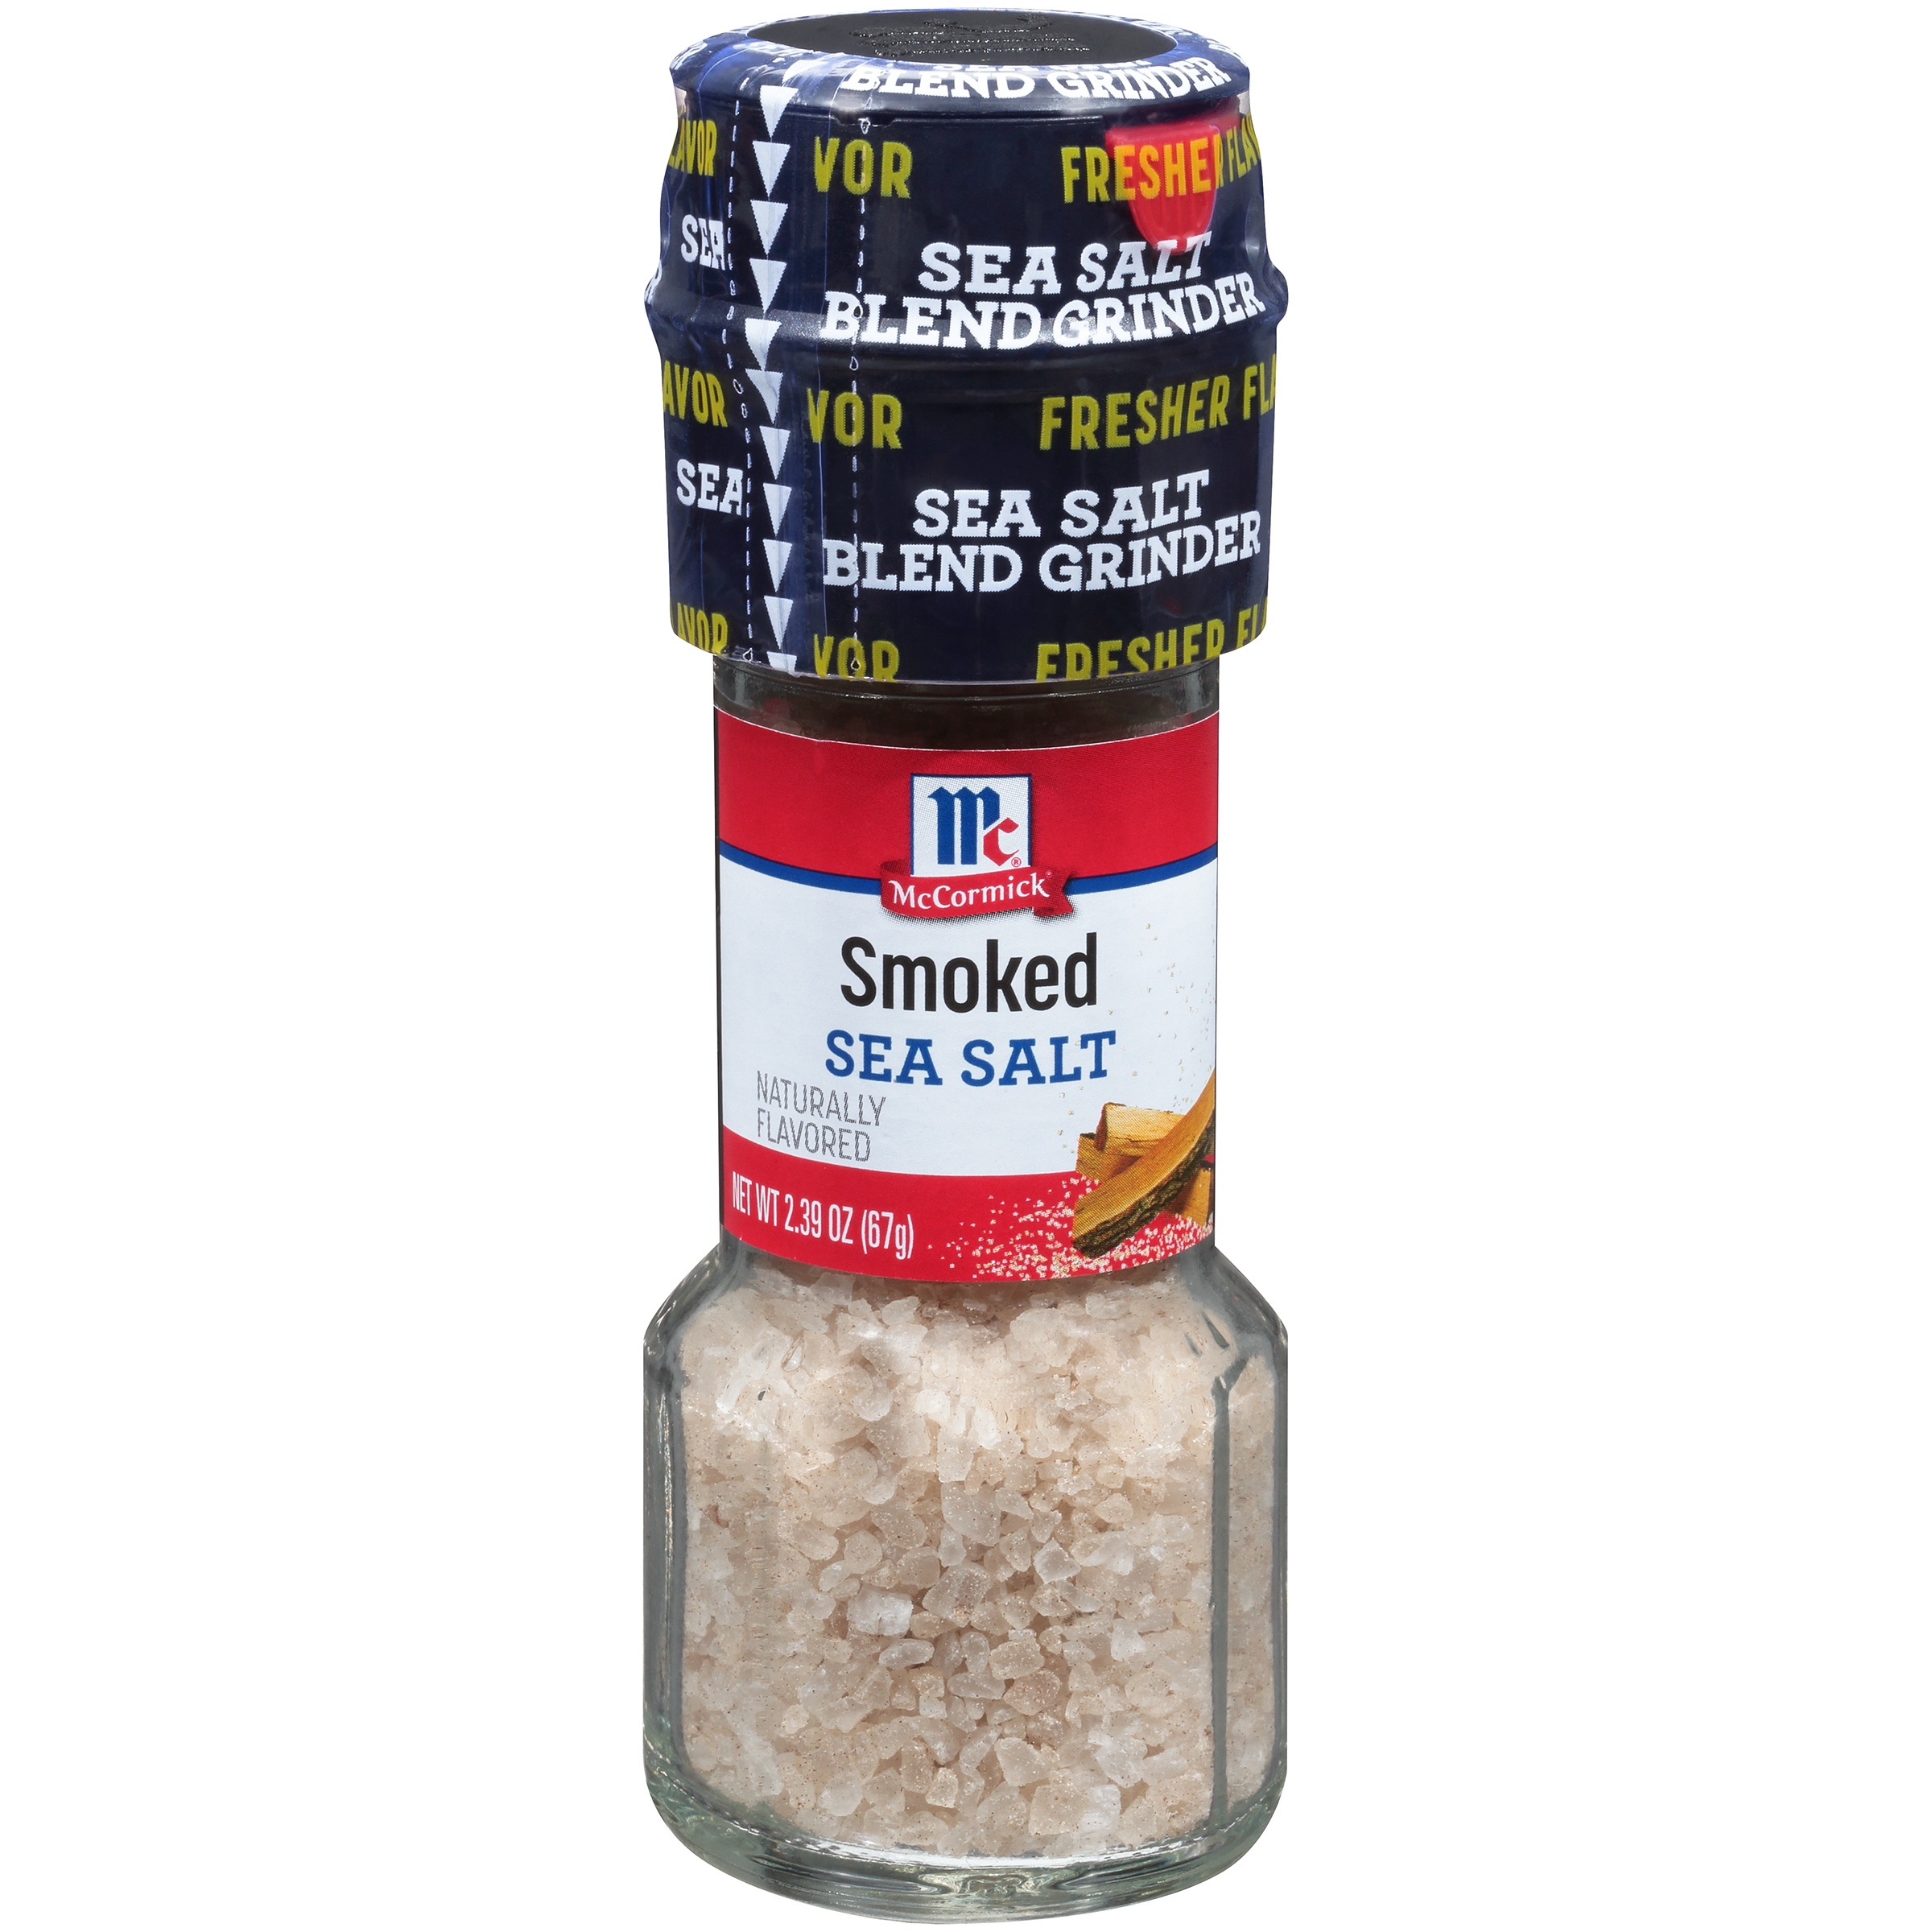 McCormick Smoked Sea Salt Grinder, 2.39 oz. Bottle by McCormick & Co., Inc